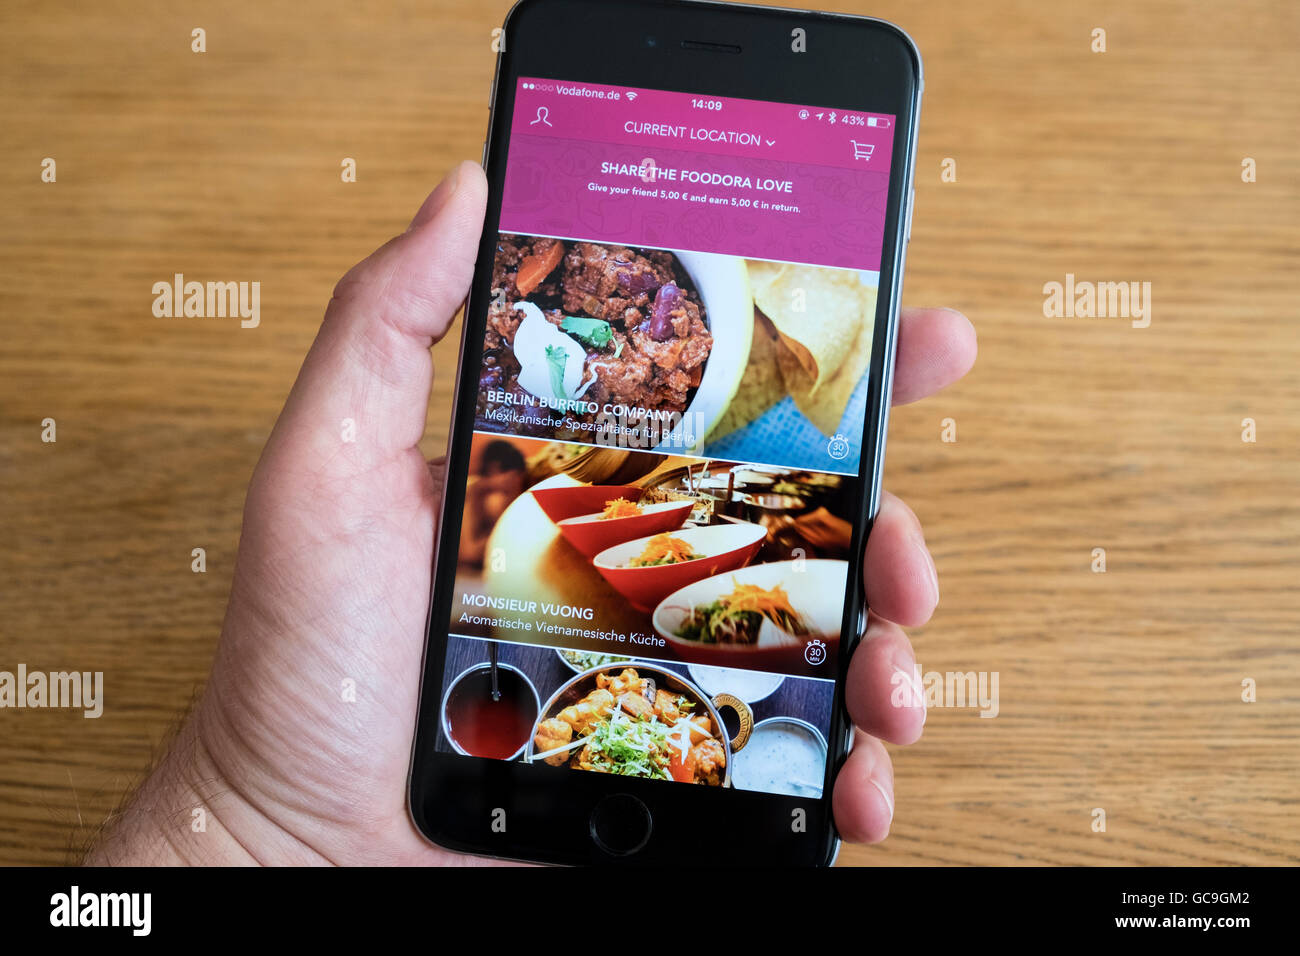 Food Delivery Stock Photos & Food Delivery Stock Images - Alamy